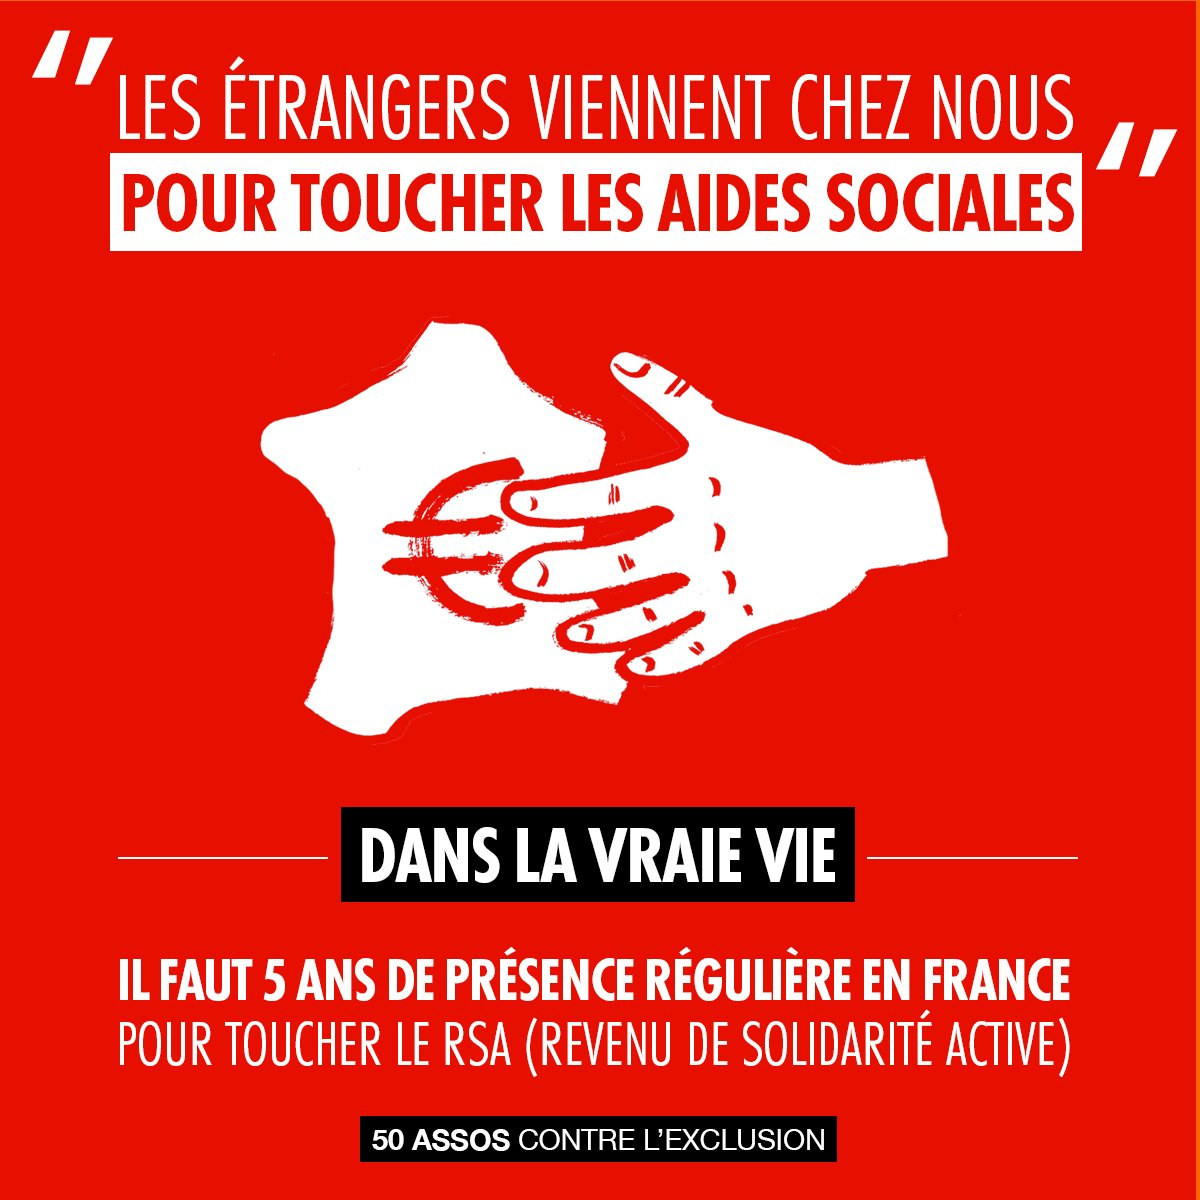 Source : 50 assos contre l'exclusion - L'autre campagne #DansLaVraieVie (2017) - http://50assos-contrelexclusion.org/index.php